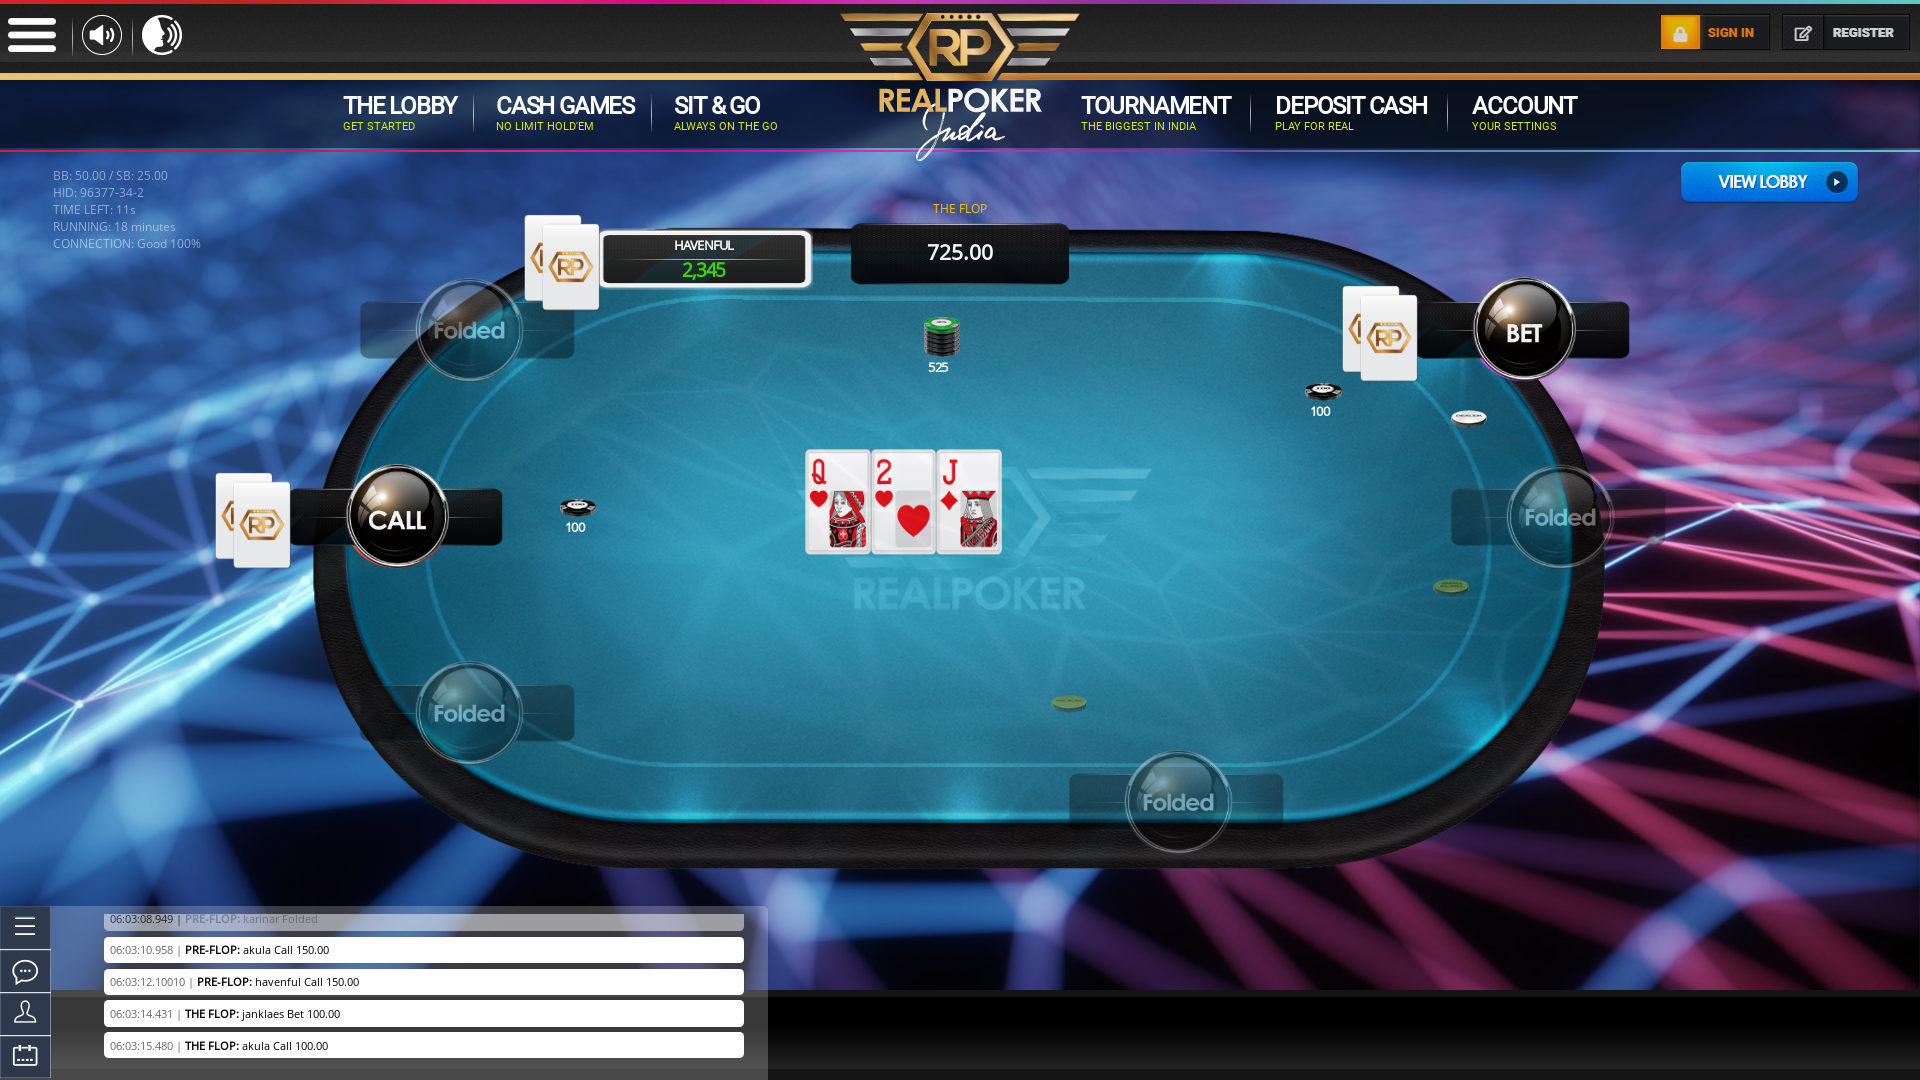 Real poker on a 10 player table in the 18th minute of the game